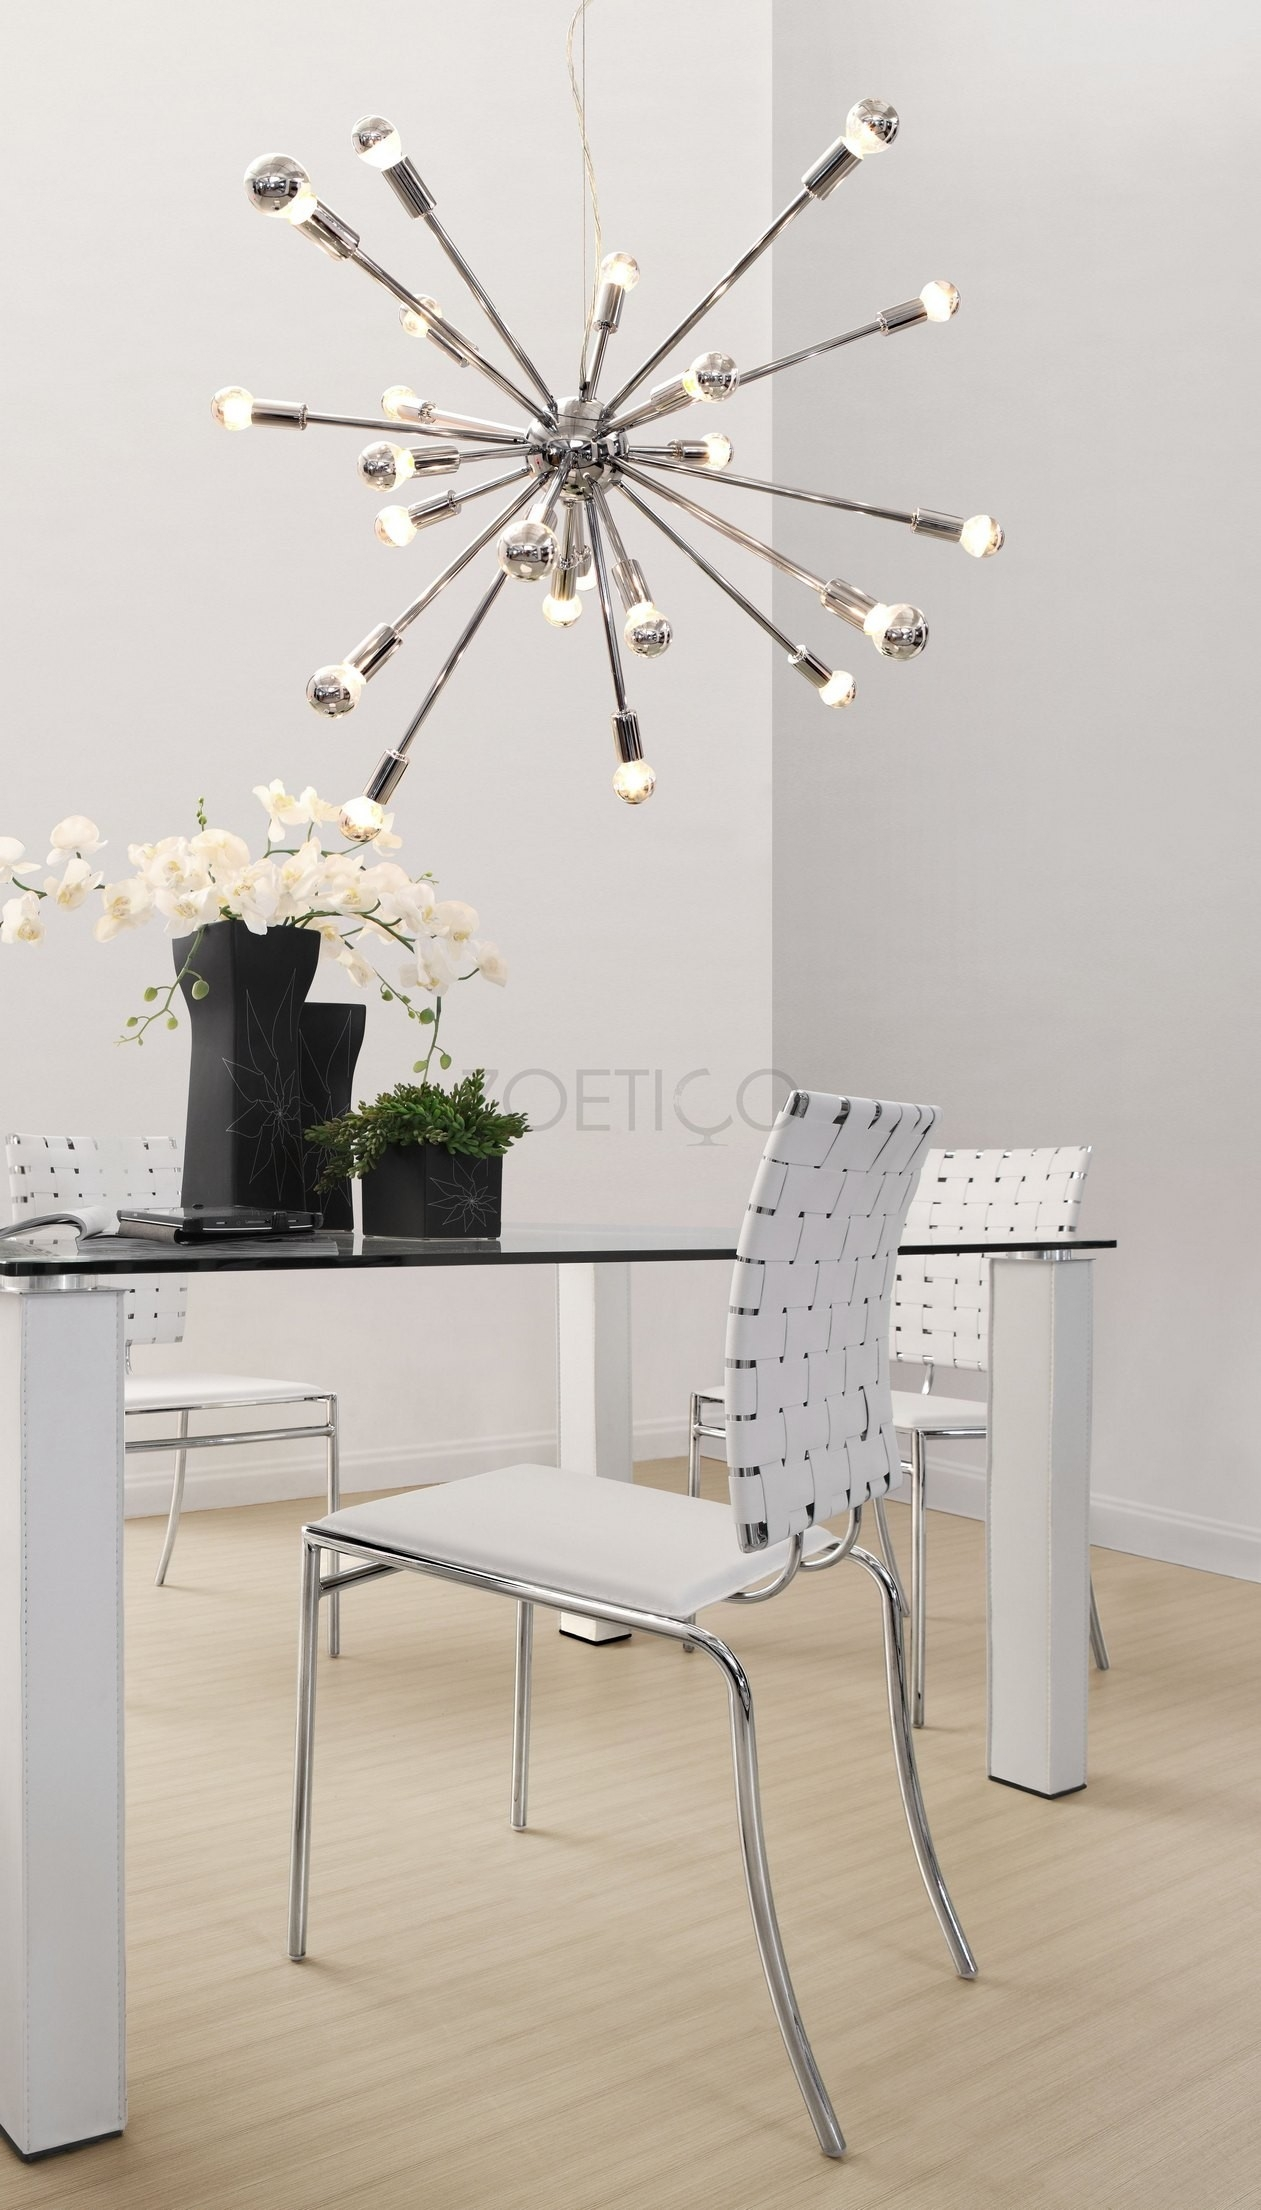 Sputnik Spark Star Hanging Chandelier Multiple Sizes Designer For Chrome Sputnik Chandeliers (Image 20 of 25)